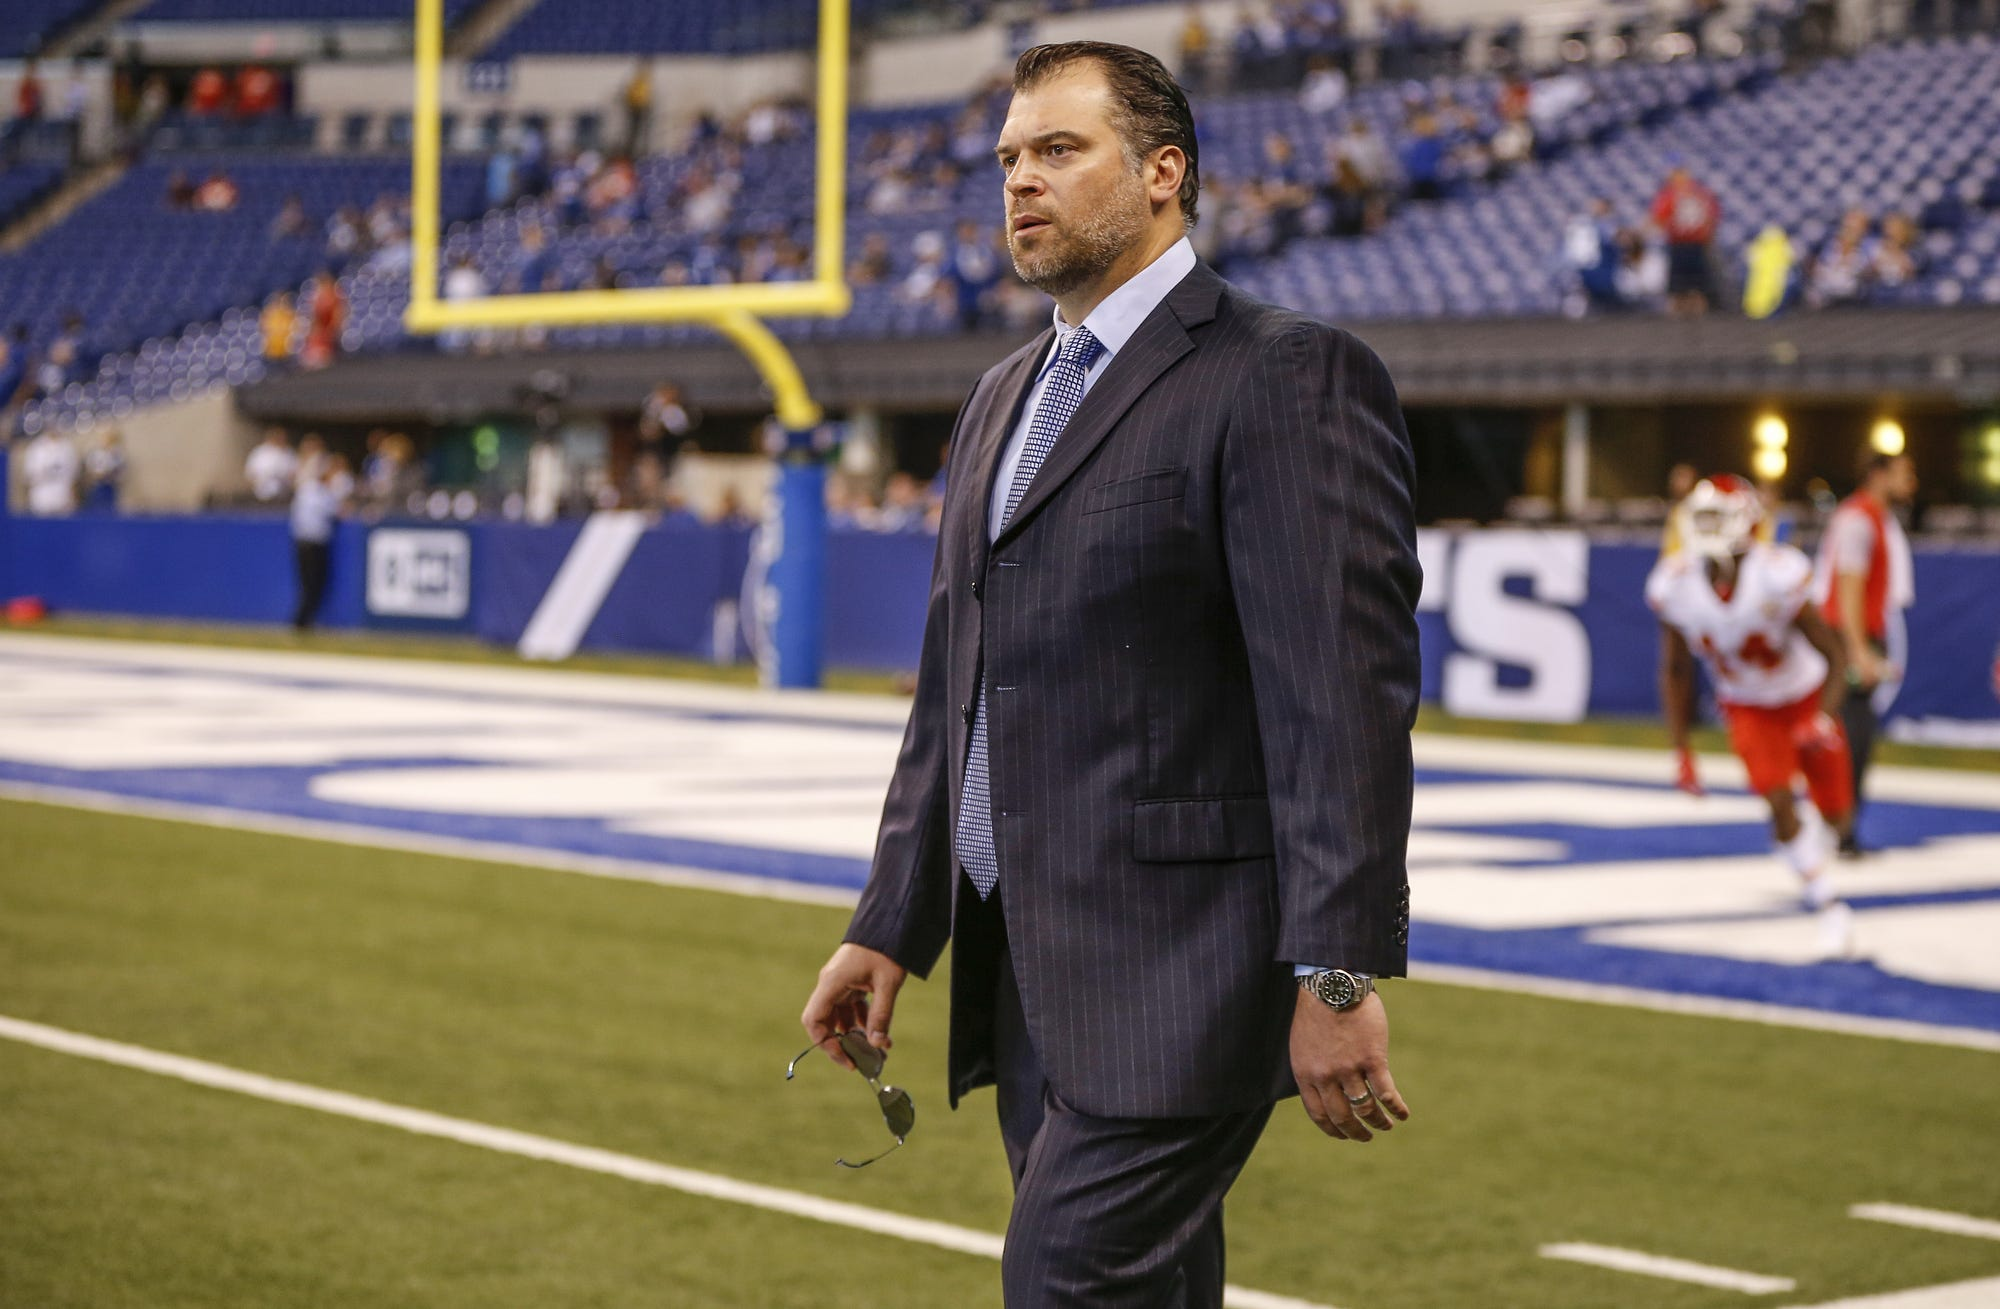 Browns hire former Colts GM Ryan Grigson, and snark ensues